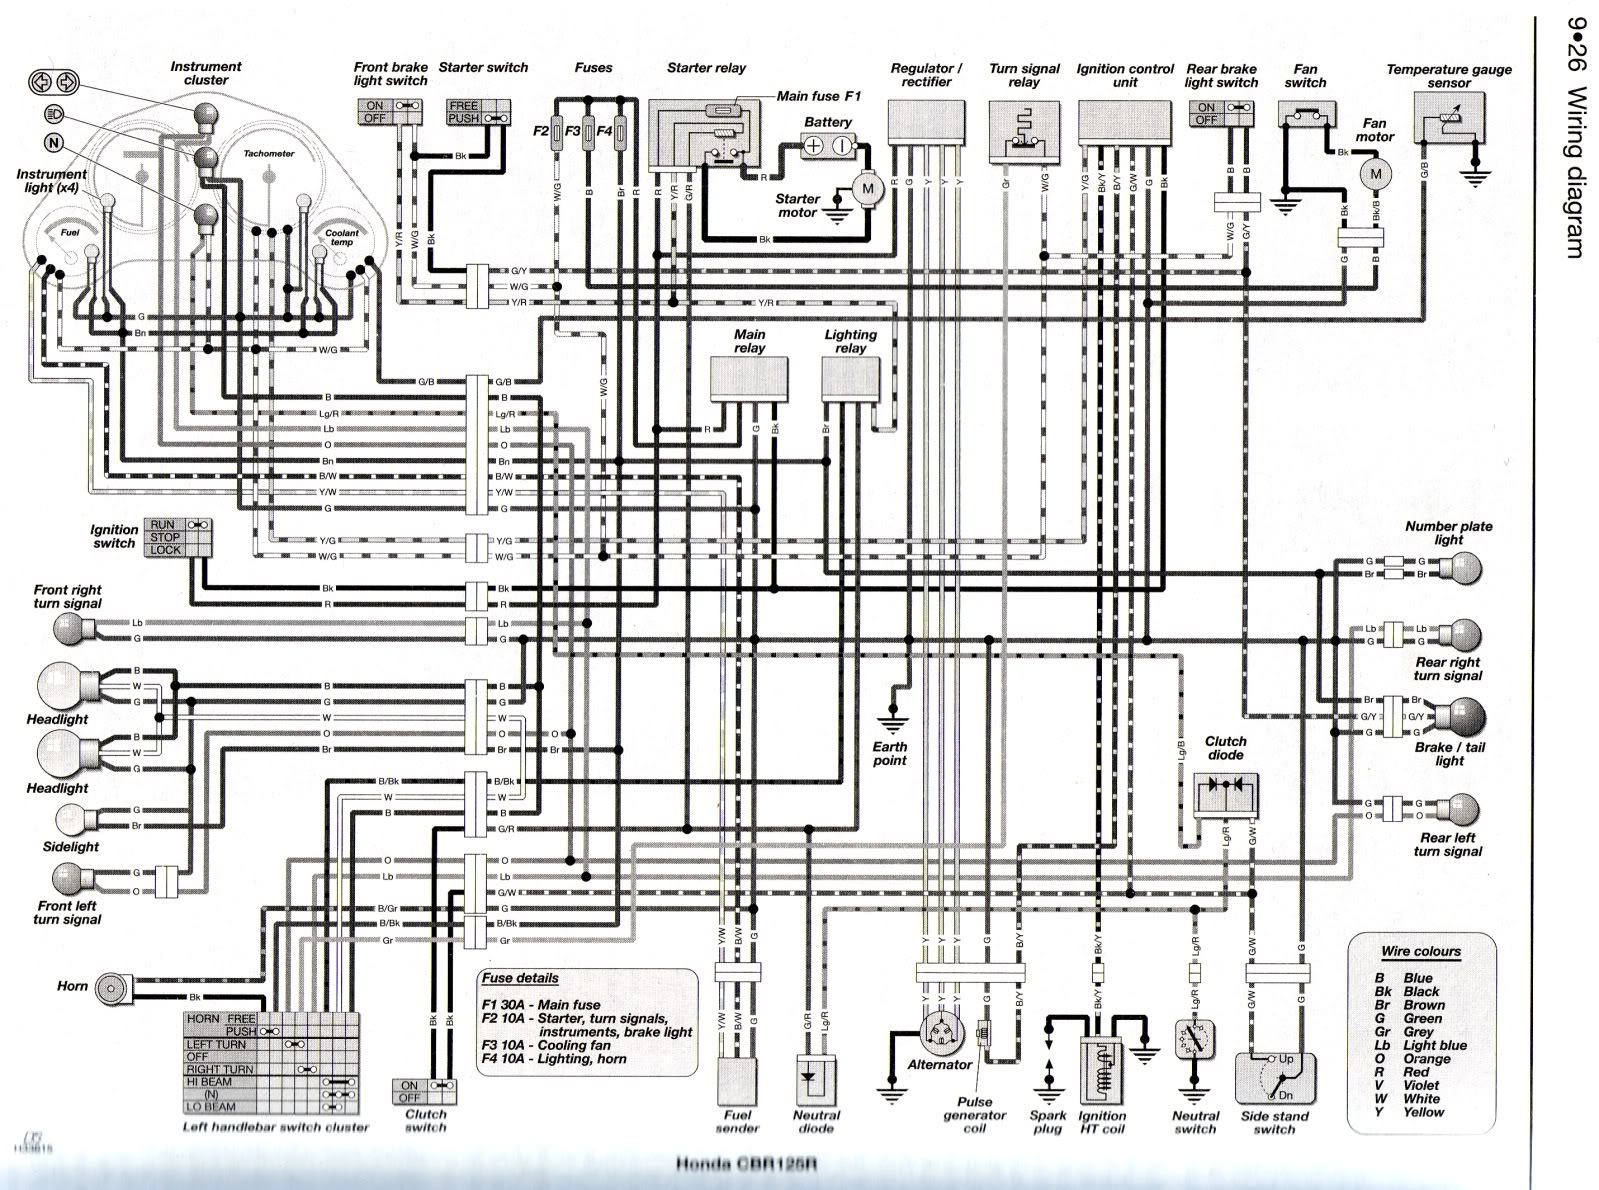 Diagram  Honda Varadero 125 Wiring Diagram Full Version Hd Quality Wiring Diagram